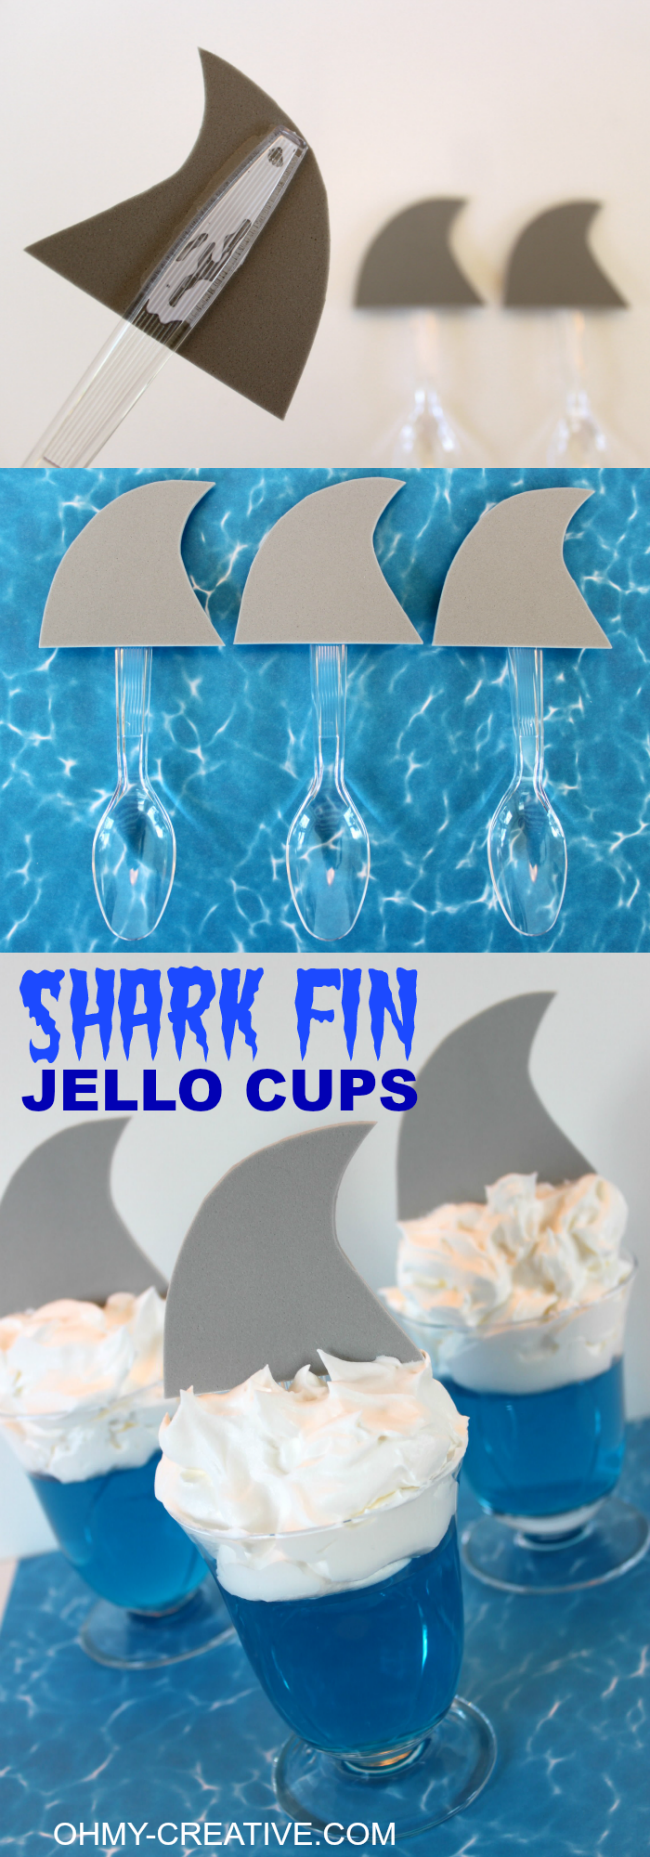 Shark Fin Jello Cups Oh My Creative